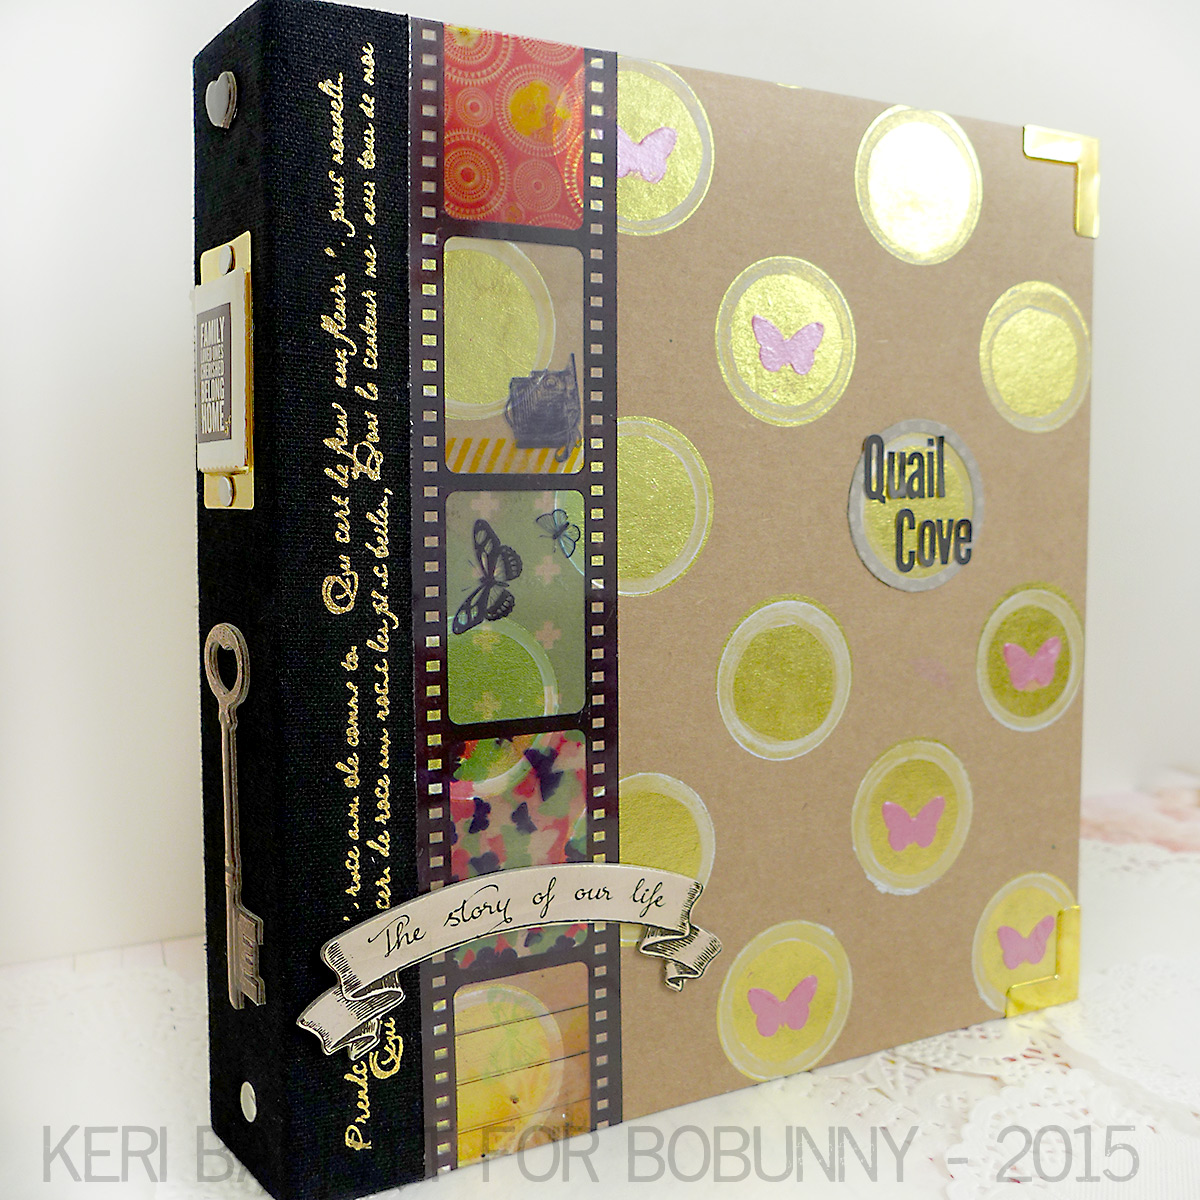 Quail Cove by Keri Babbitt using BoBunny Misc Me Metallic Binders